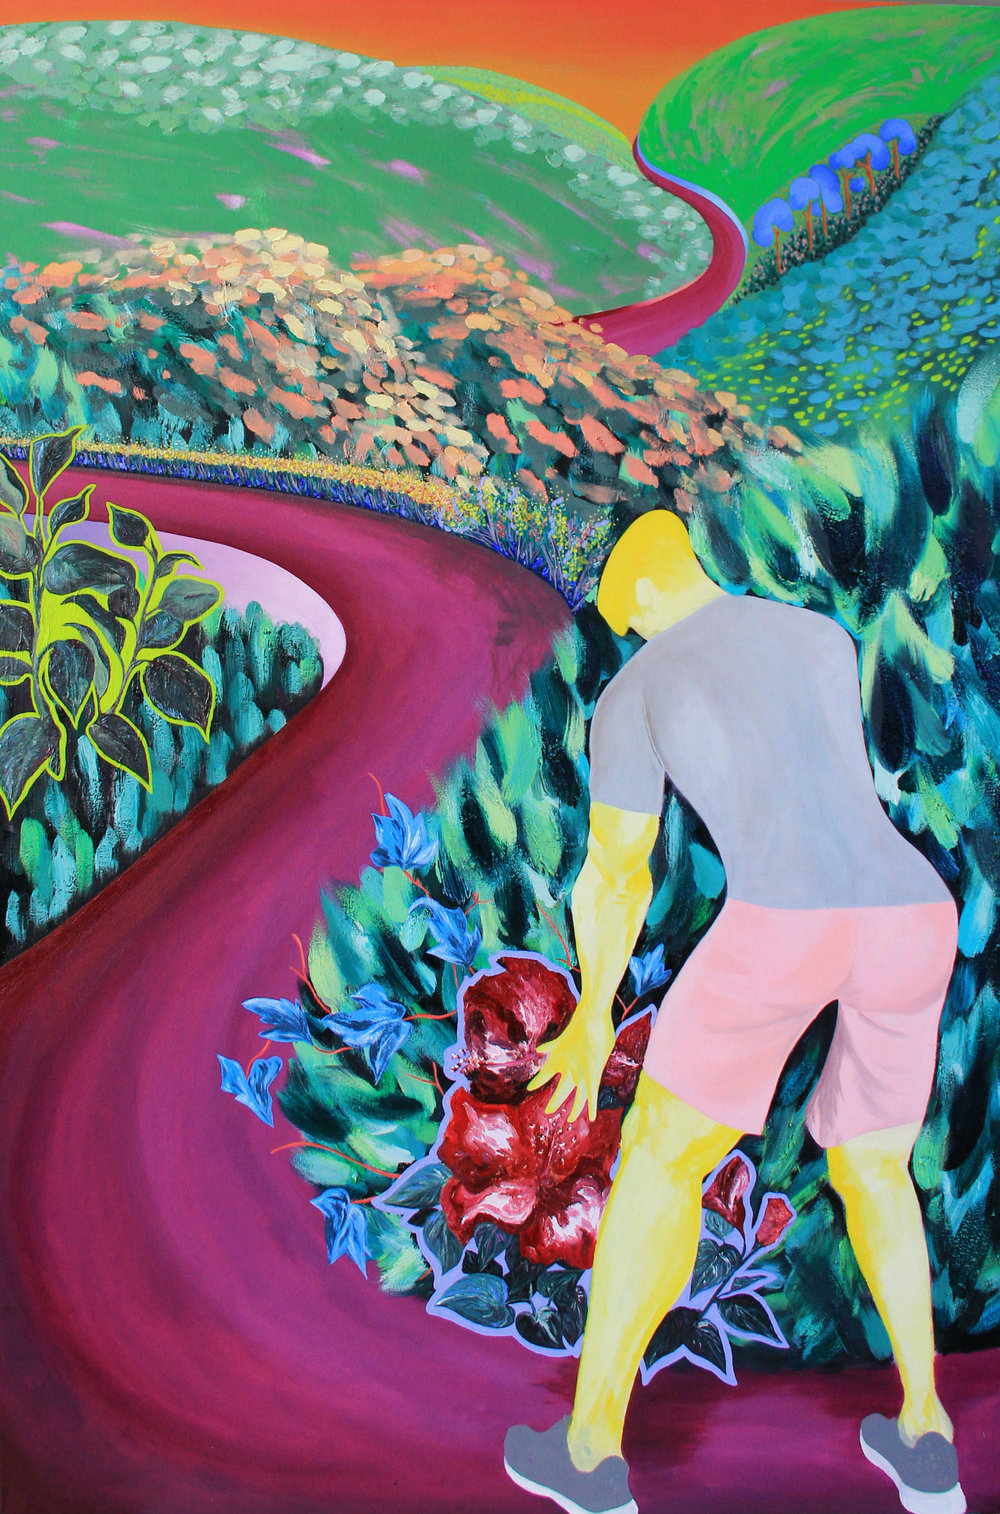 "I Shouldn't Be Here Ⅱ - 72 x 48 in., oil on stretched canvas2018In this piece, the artist captures her husband's sudden exuberance upon seeing flowers along a path. His animated display of hysterical wonder stands contrary to the idea that men shouldn't show strong positive emotions. Placed in relation to ""I Shouldn't Be Here"", the pair of works begin to offer a broader view of masculinity. The second figure in the composition is the other person on the path, the unseen viewer. This is where the artist stands, looking beyond to the unknown path. She at once commits to the journey ahead while acknowledging the lack of Asian American women represented in her chosen life path."